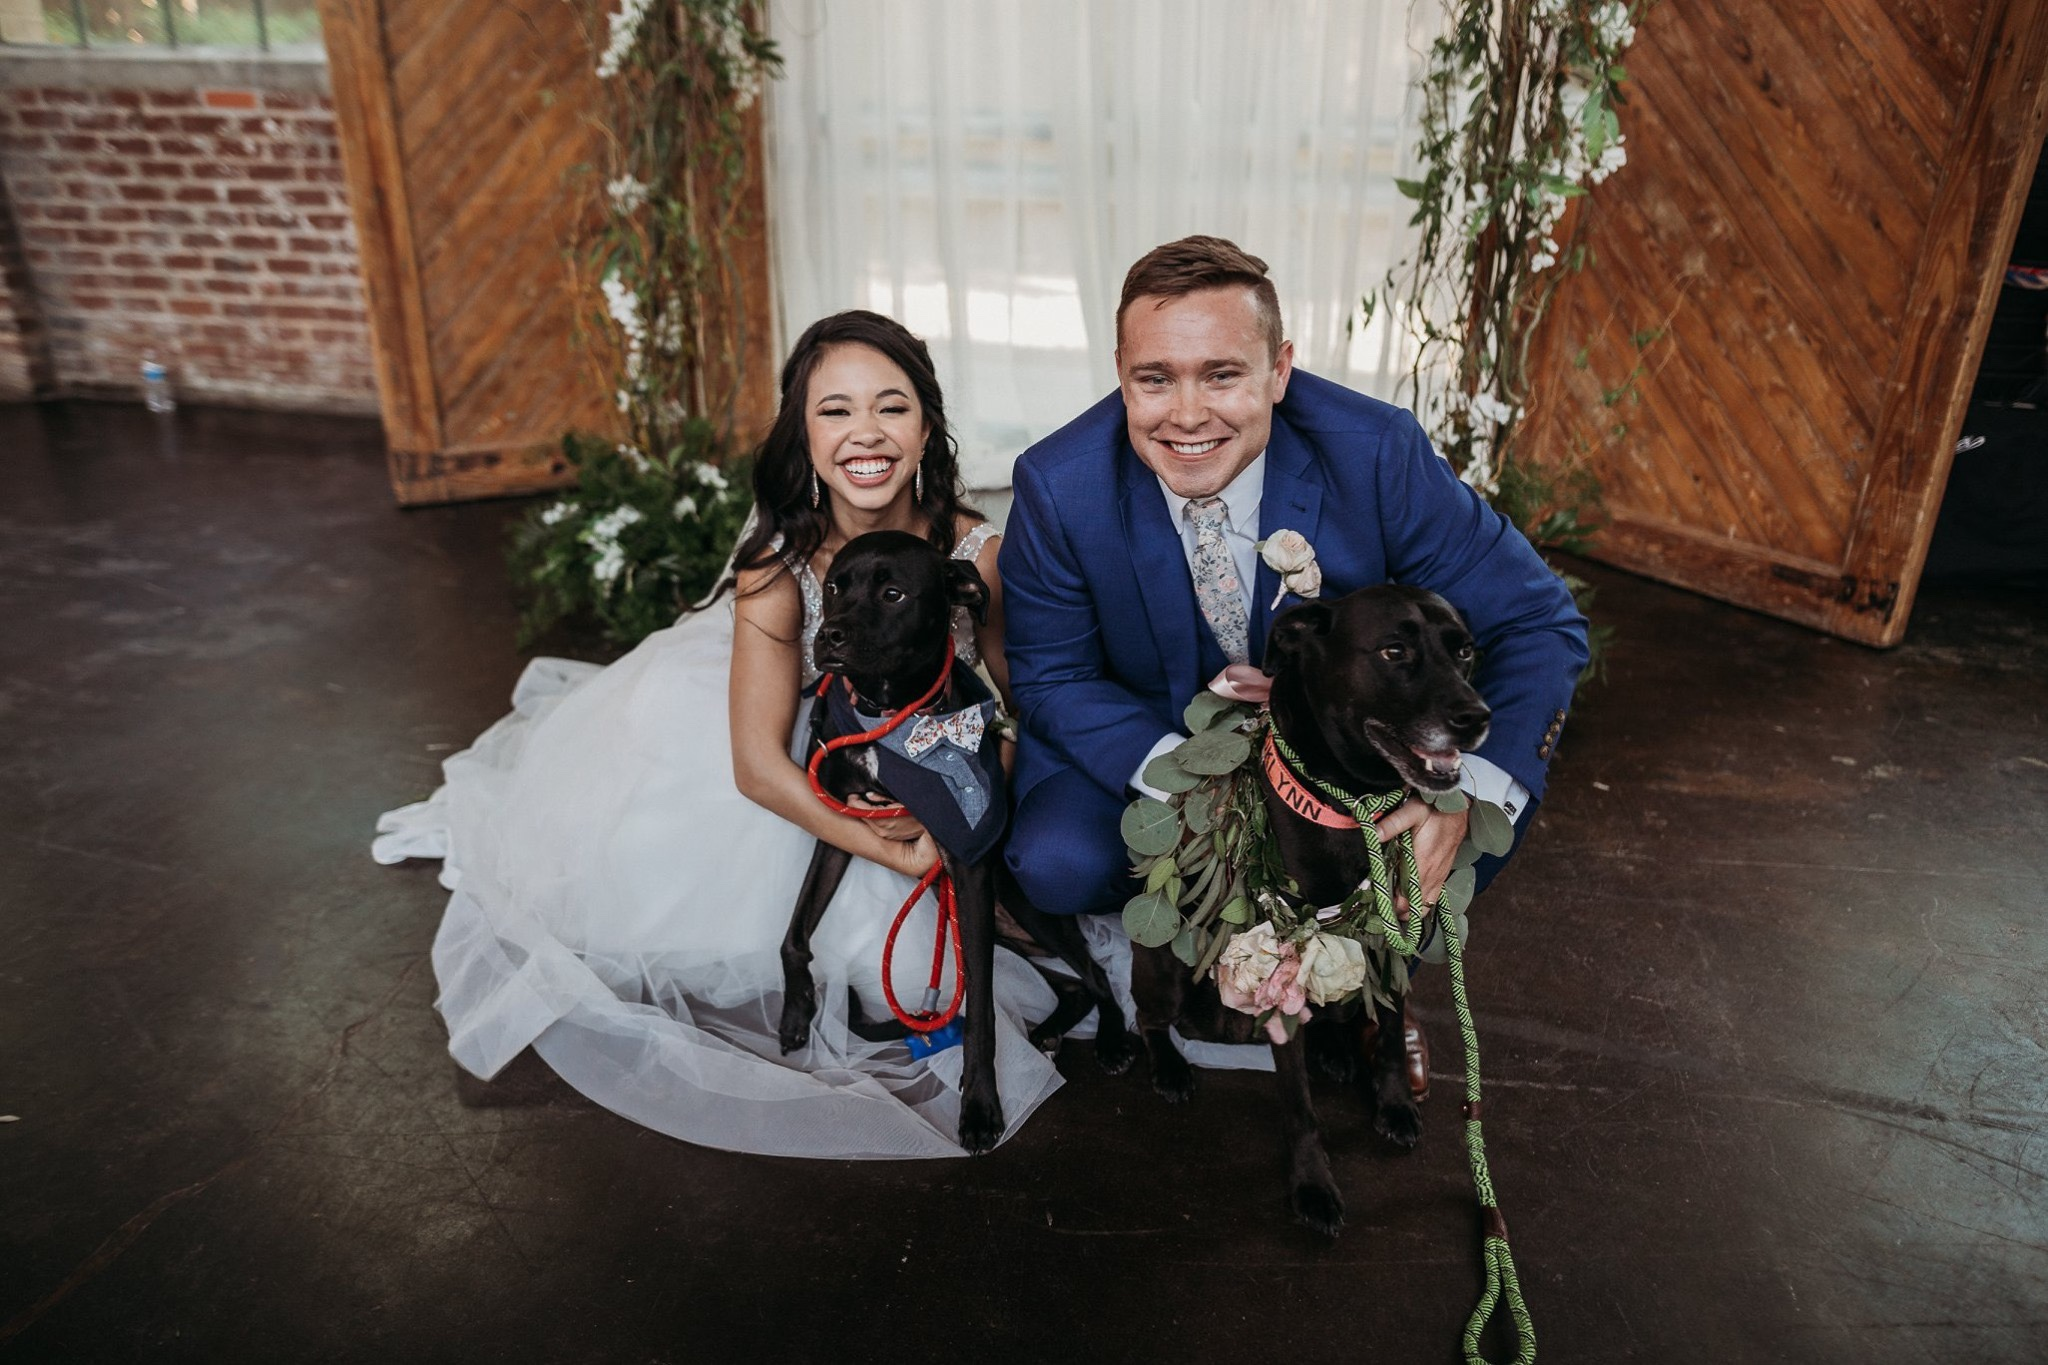 Our dogs were in our wedding